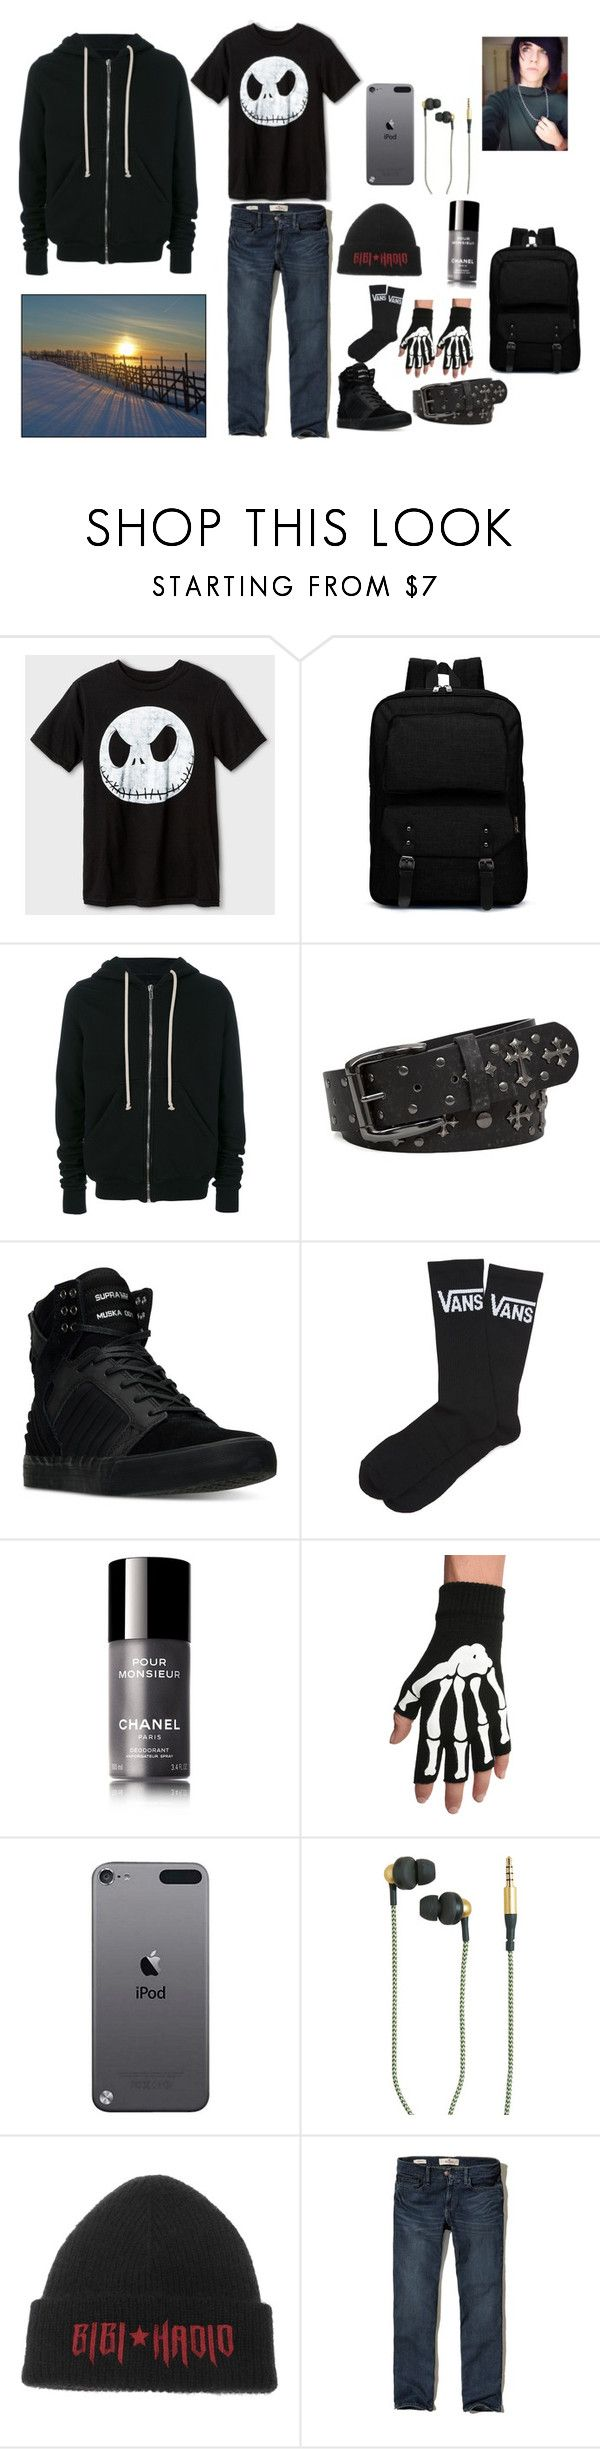 Emo Guy Outfit by ghostmanl on Polyvore featuring Hollister Co., Rick Owens, Vans, Supra, BKE, Chanel, Tommy Hilfiger, Kreafunk, Hot Topic and men's fashion